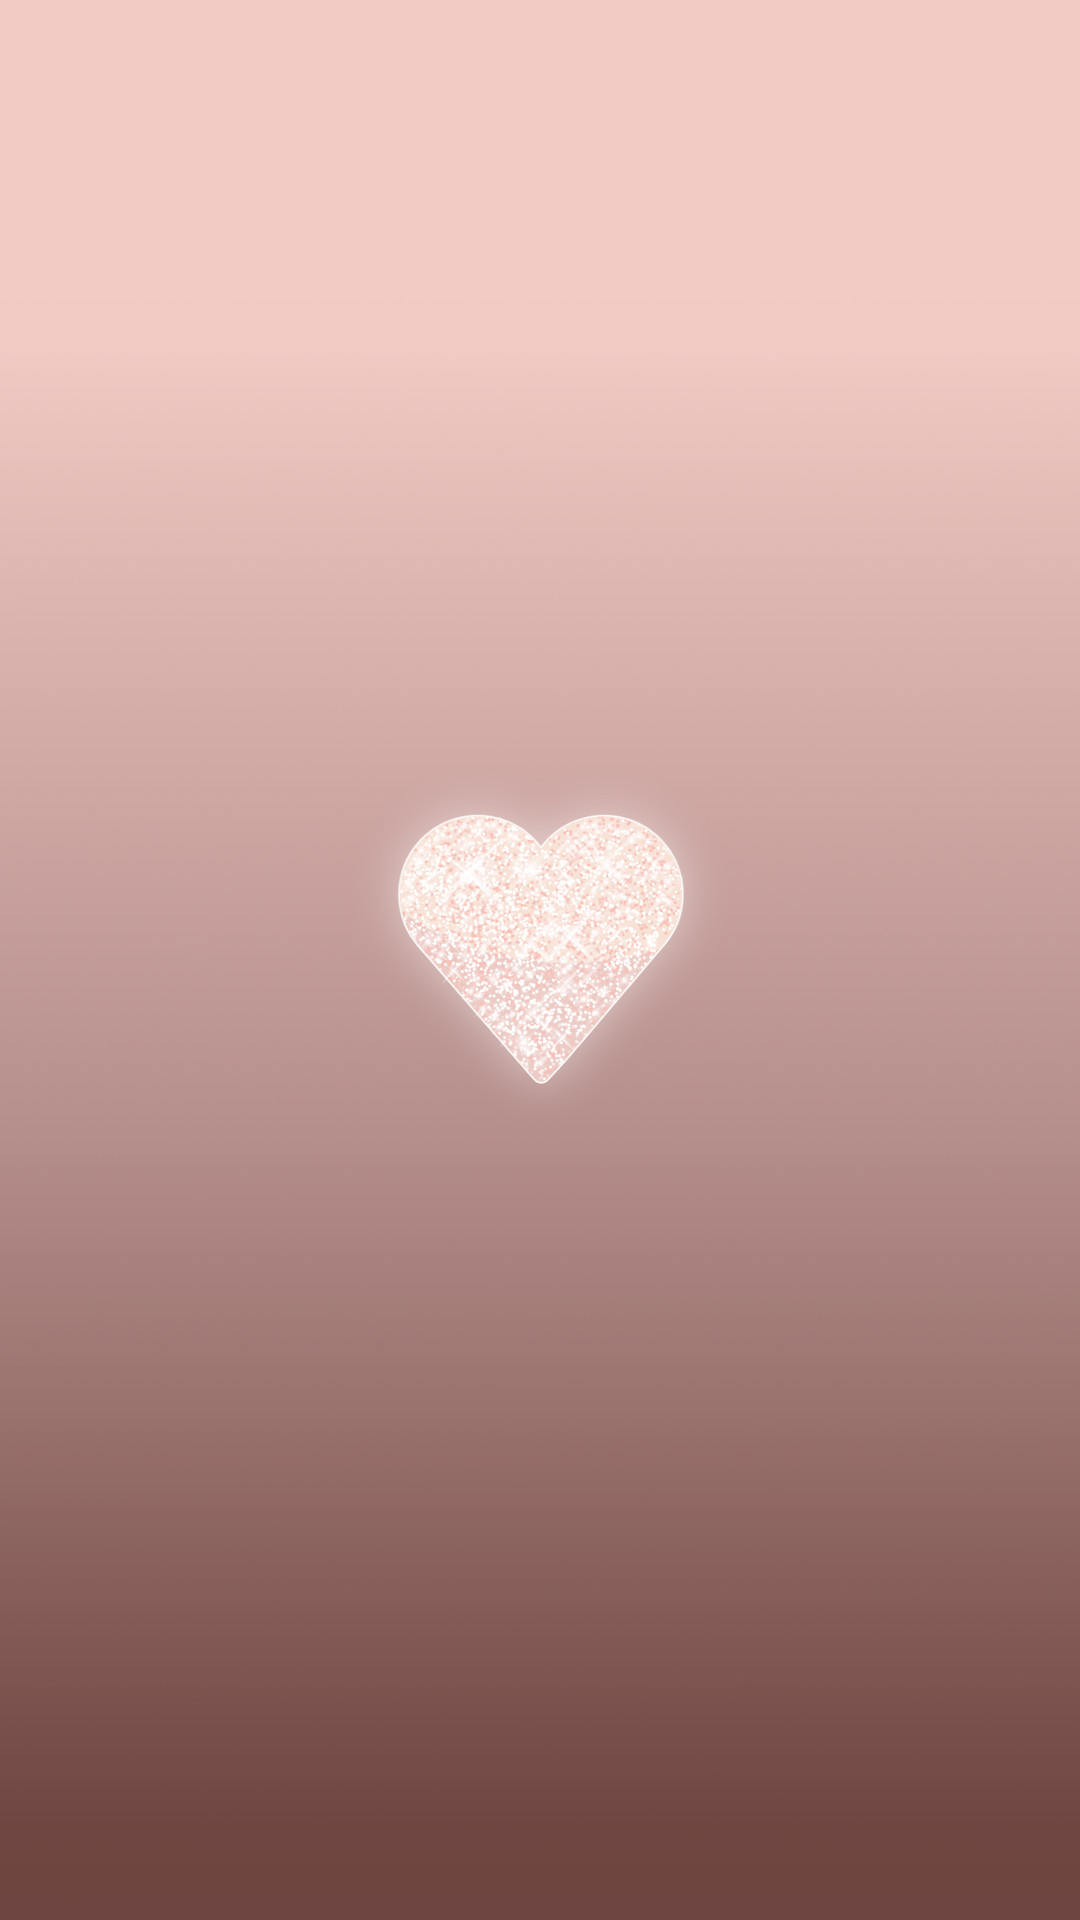 Rose Gold Wallpapers 57 Images